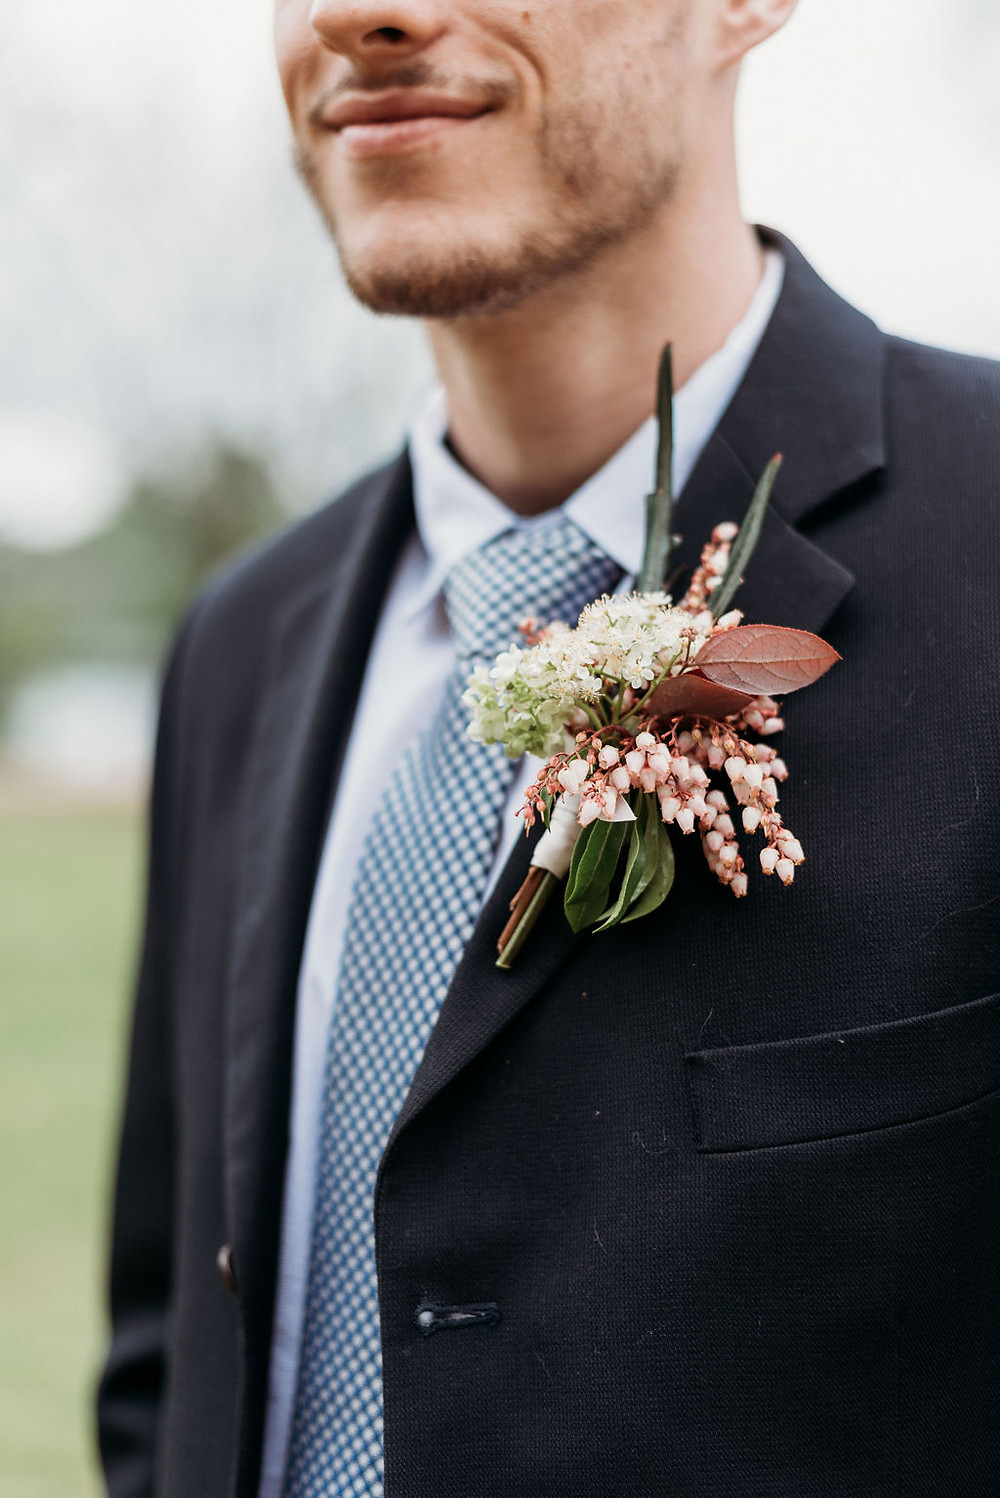 detail photo of groom's details for his Austin elopement. photo is of the groom's boutonnière from wow factor floral. you cannot see the groom's face, just the bottom half of his head so you can see his smile down to mid-torso